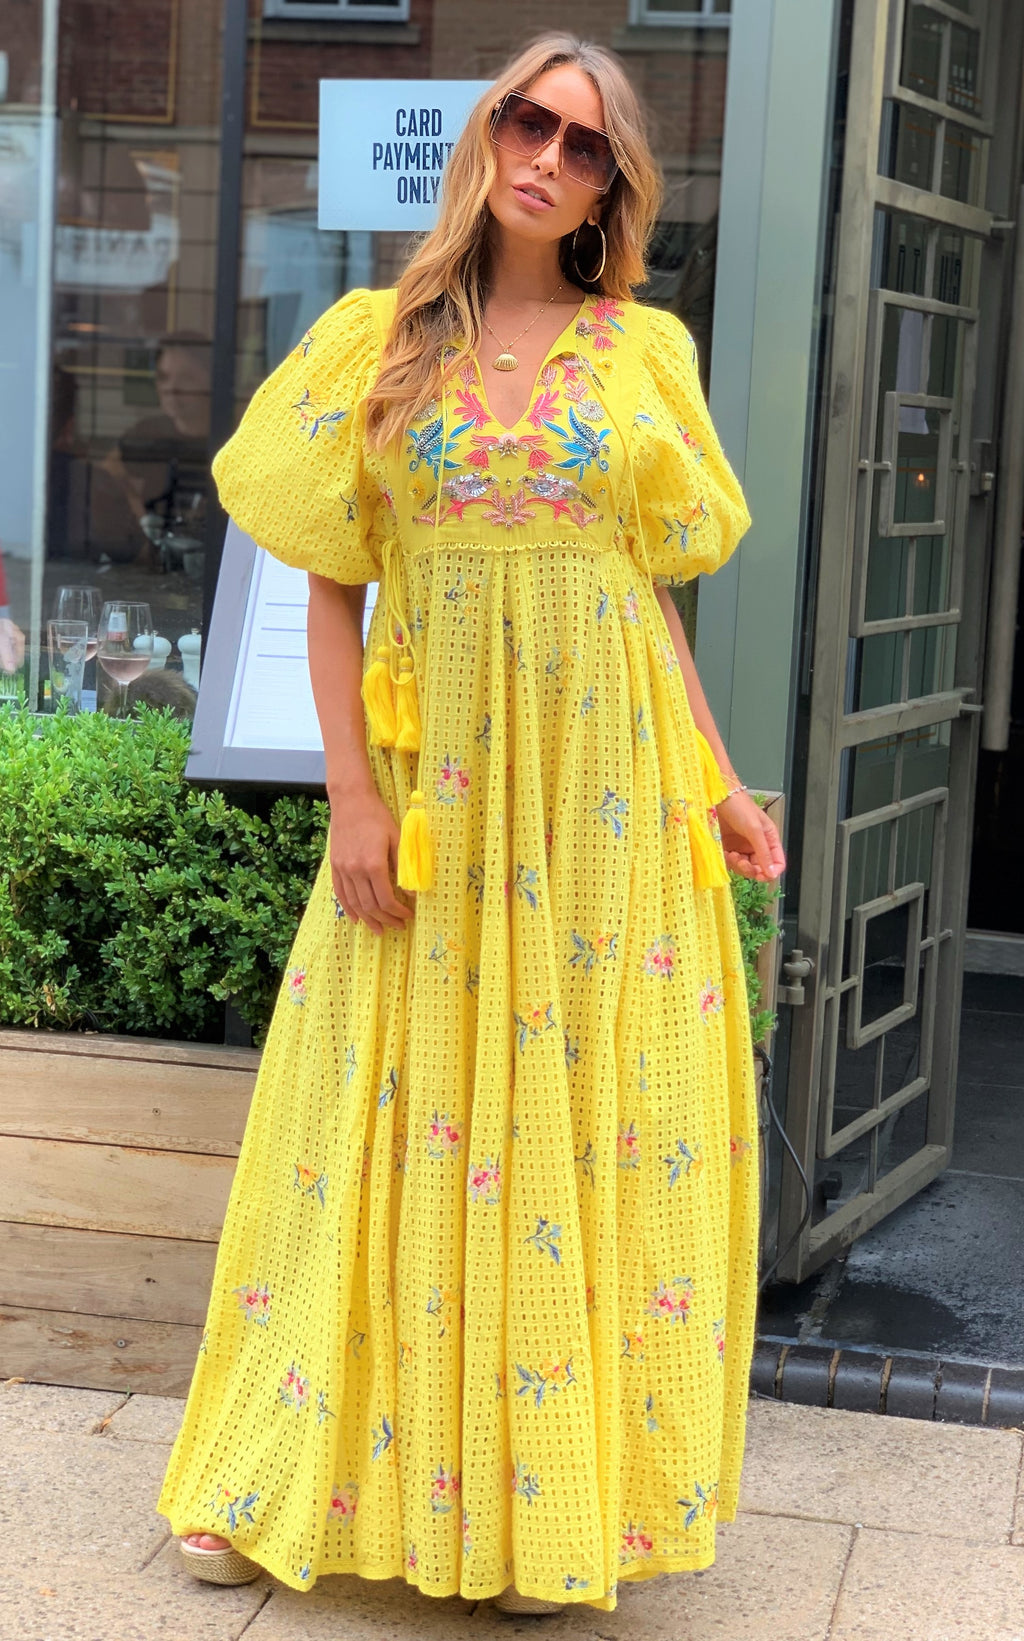 Luxe Maxi embroidery Dress Cindy in Yellow